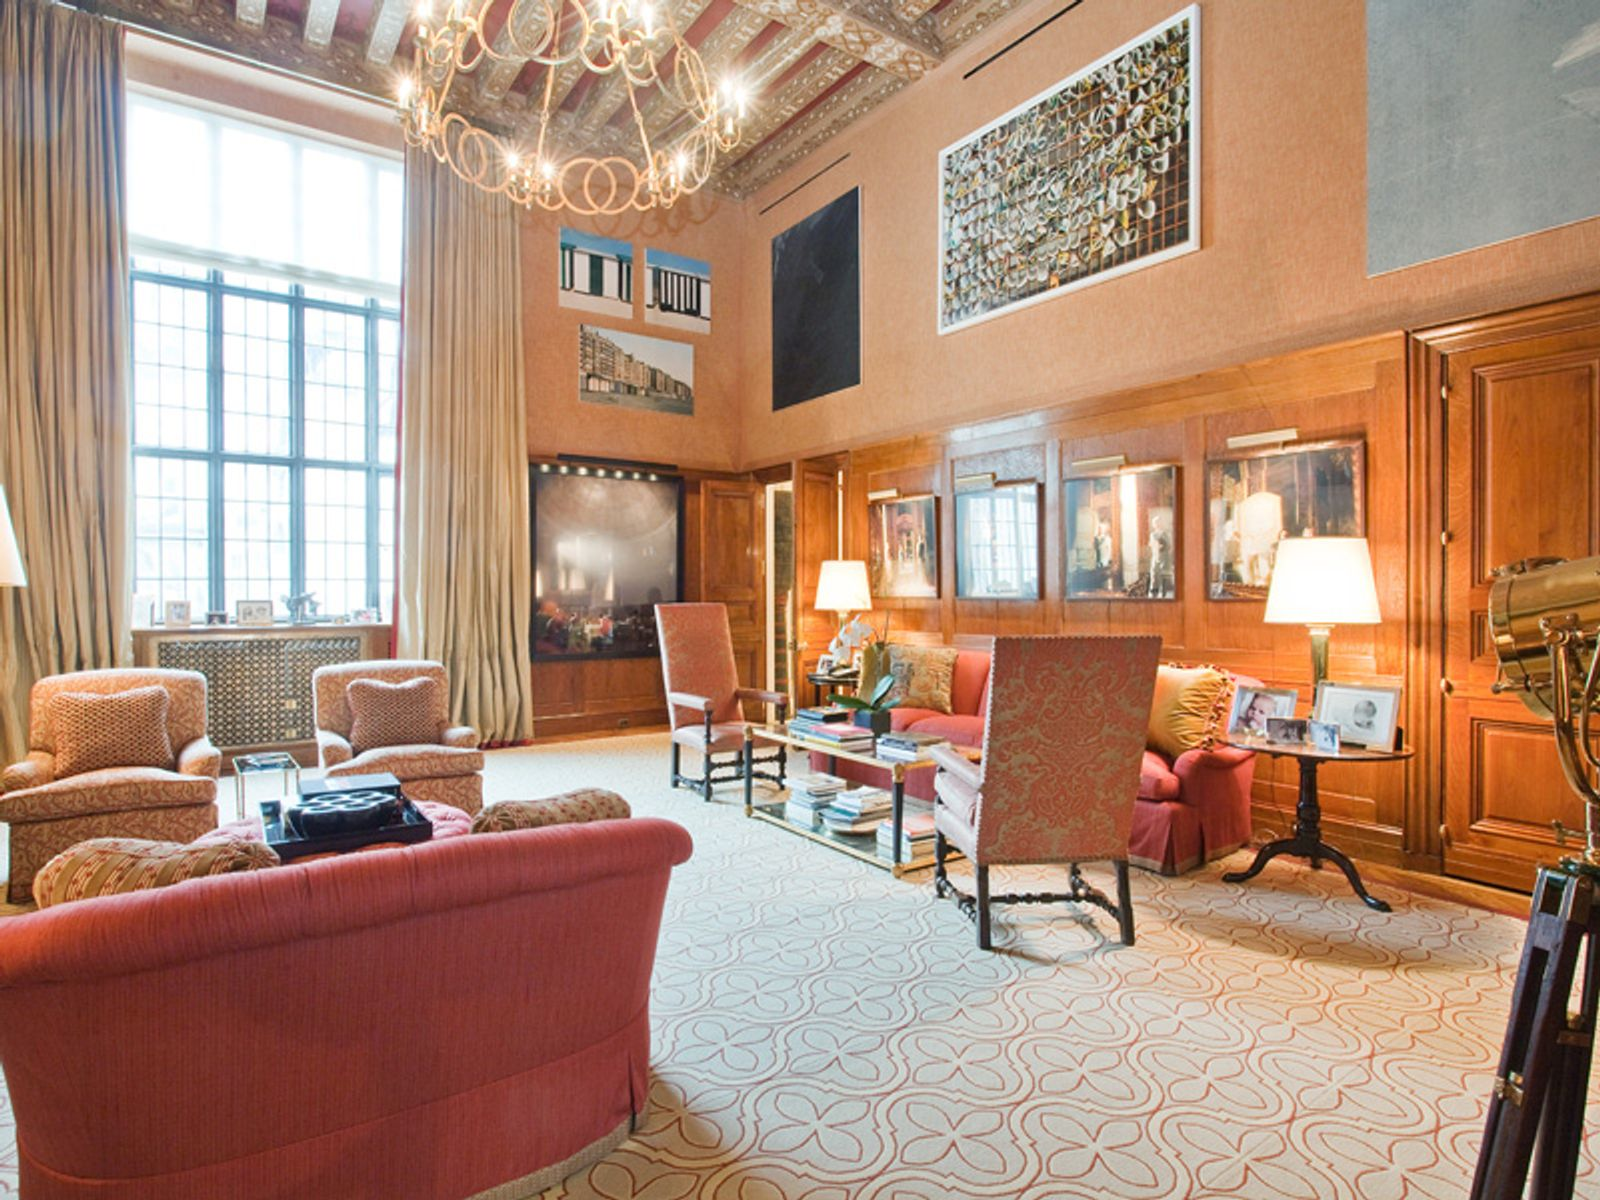 131 East 66th Street, Apartment 10D, New York NY Cooperative - New York City Real Estate